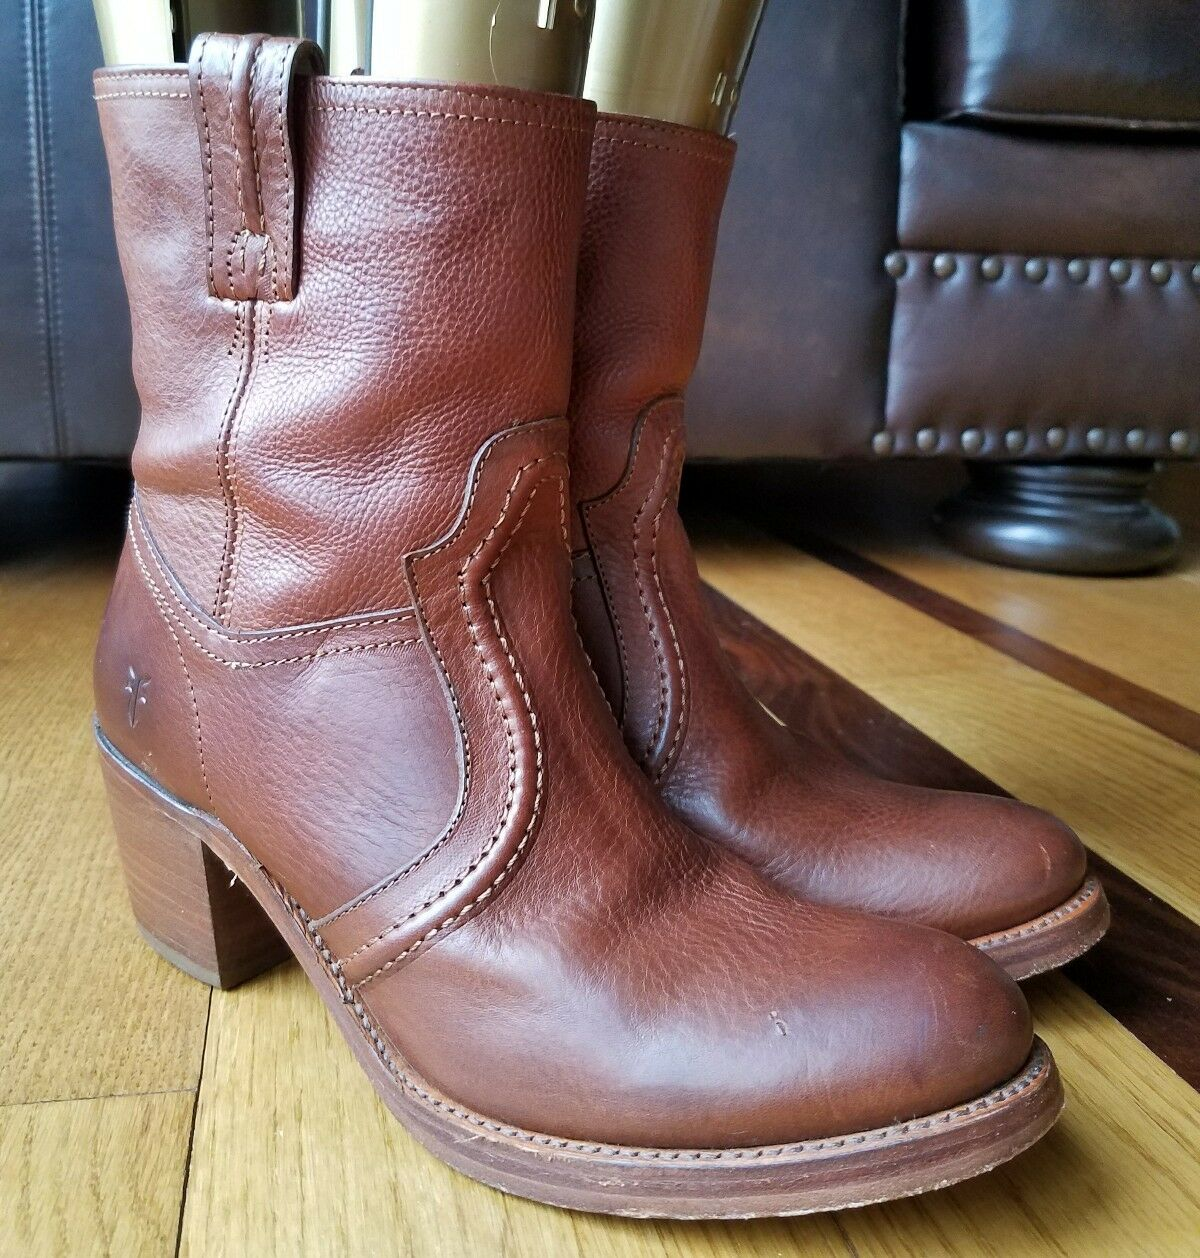 FRYE 76400 Jane Trapunto Womans Bootie Redwood Leather Motorcycle Boots Sz 7.5 B